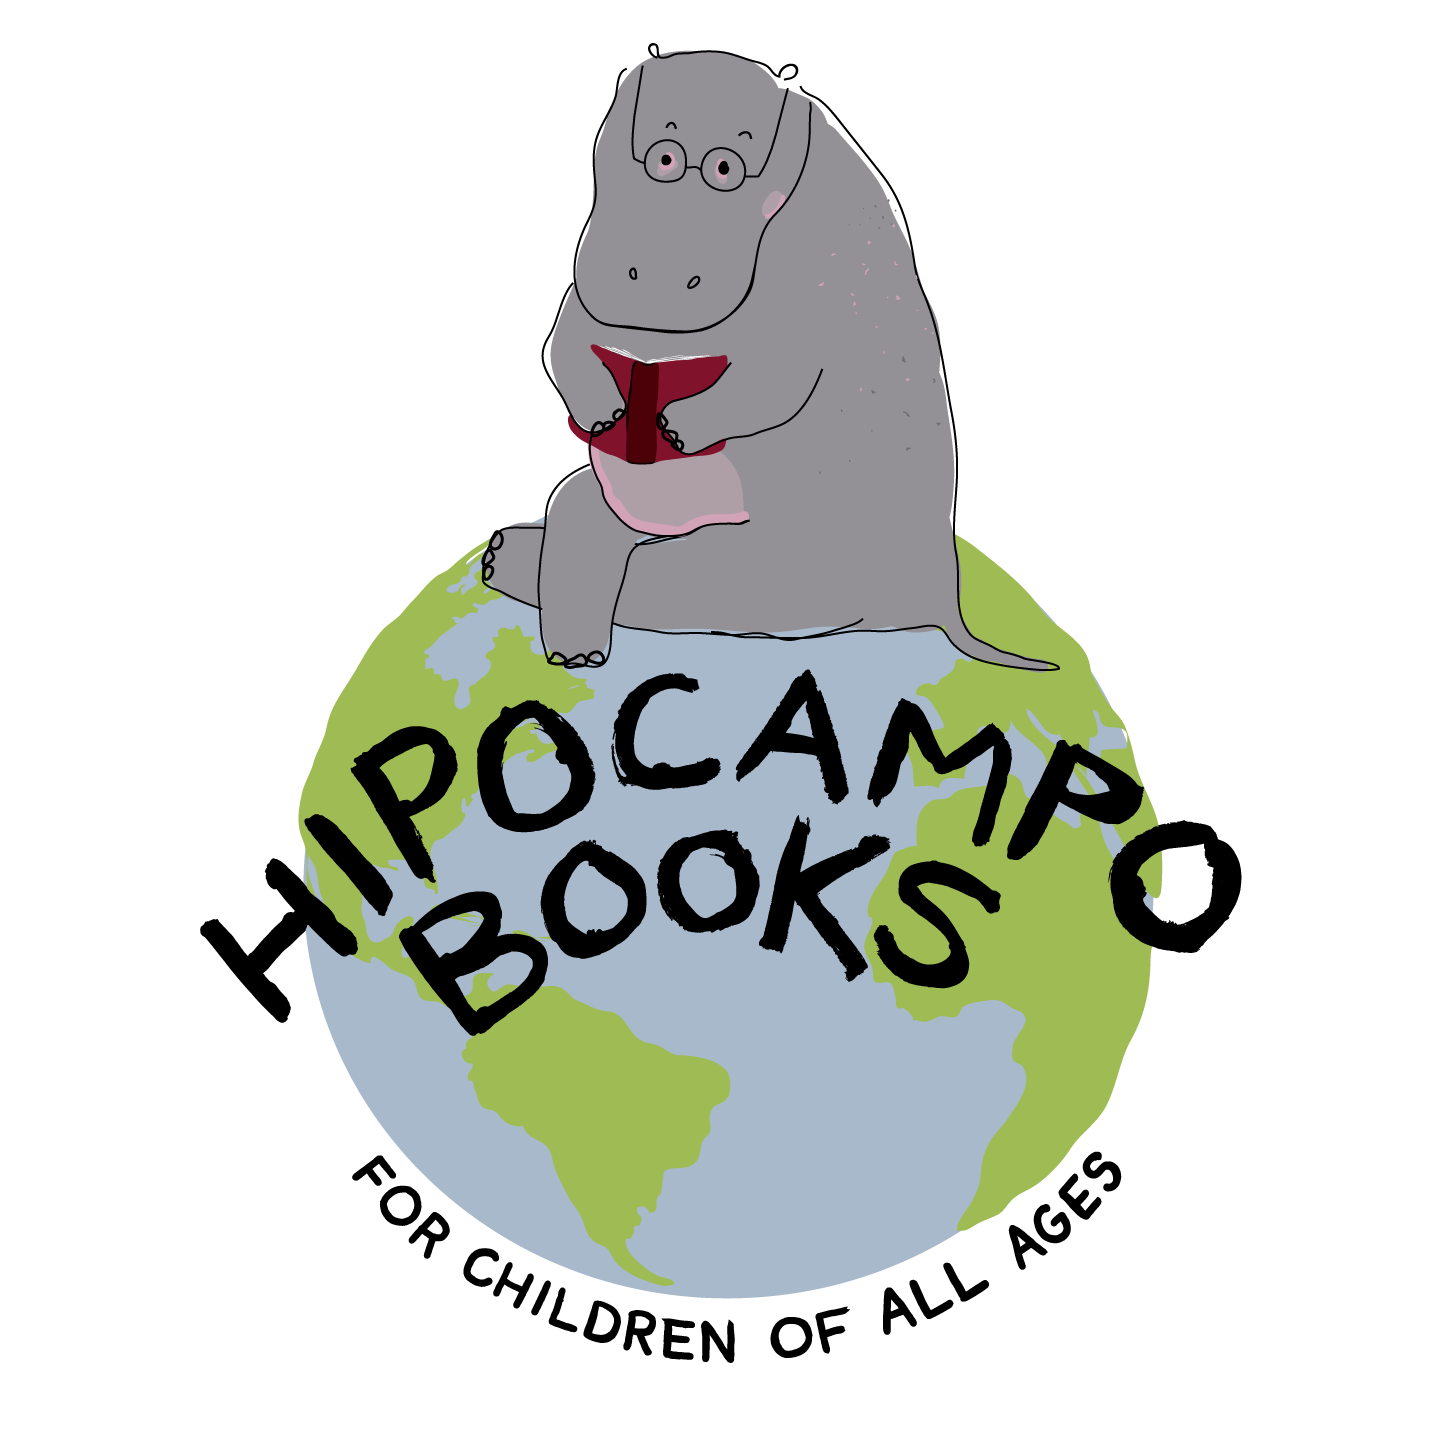 Hipocampo Children's Books